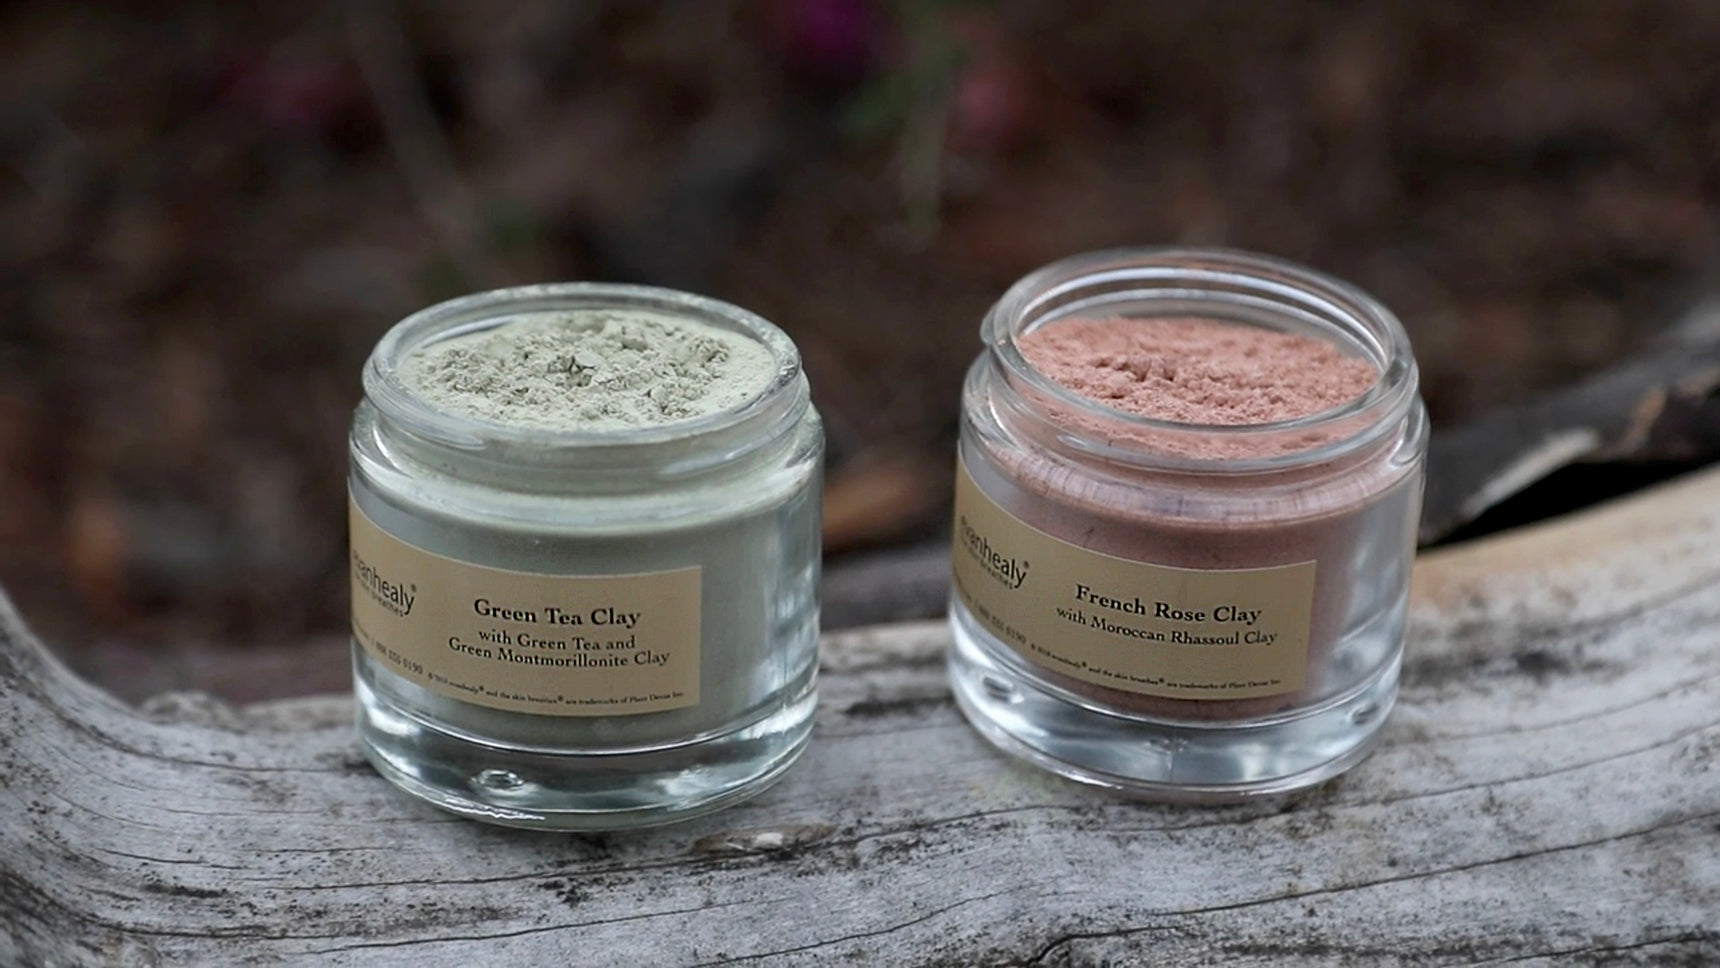 Green Tea Clay and French Rose Clay